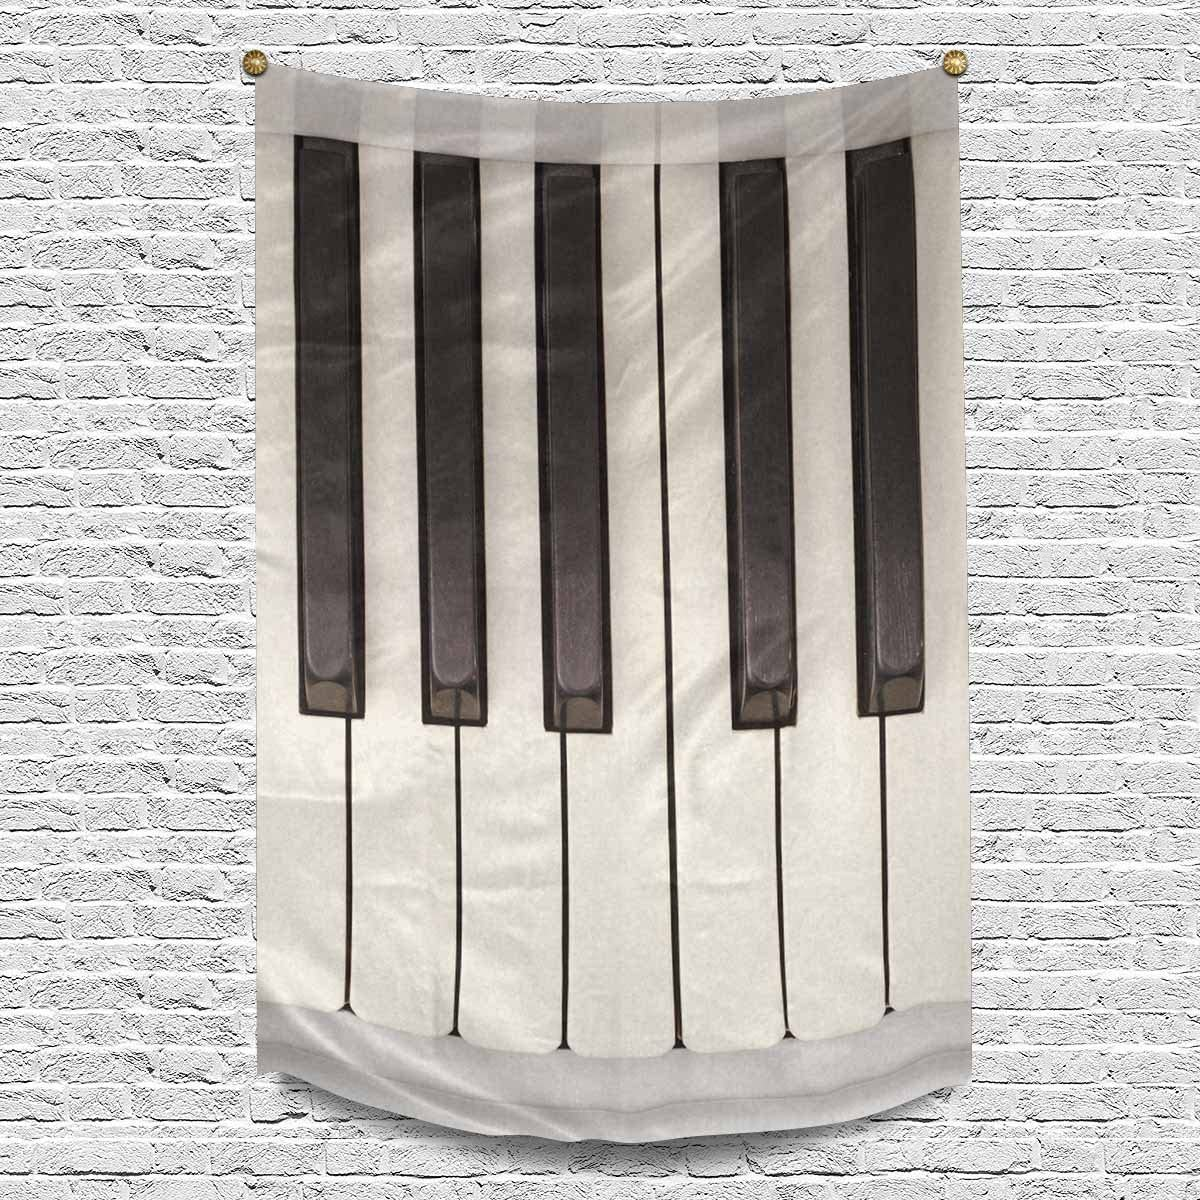 INTERESTPRINT Funny Vintage Piano Keys Keyboard Musical Theme Tapestries Home Decor, Cotton Linen Tapestry Wall Hanging Decorative Tapestry, 60W X 90L Inch